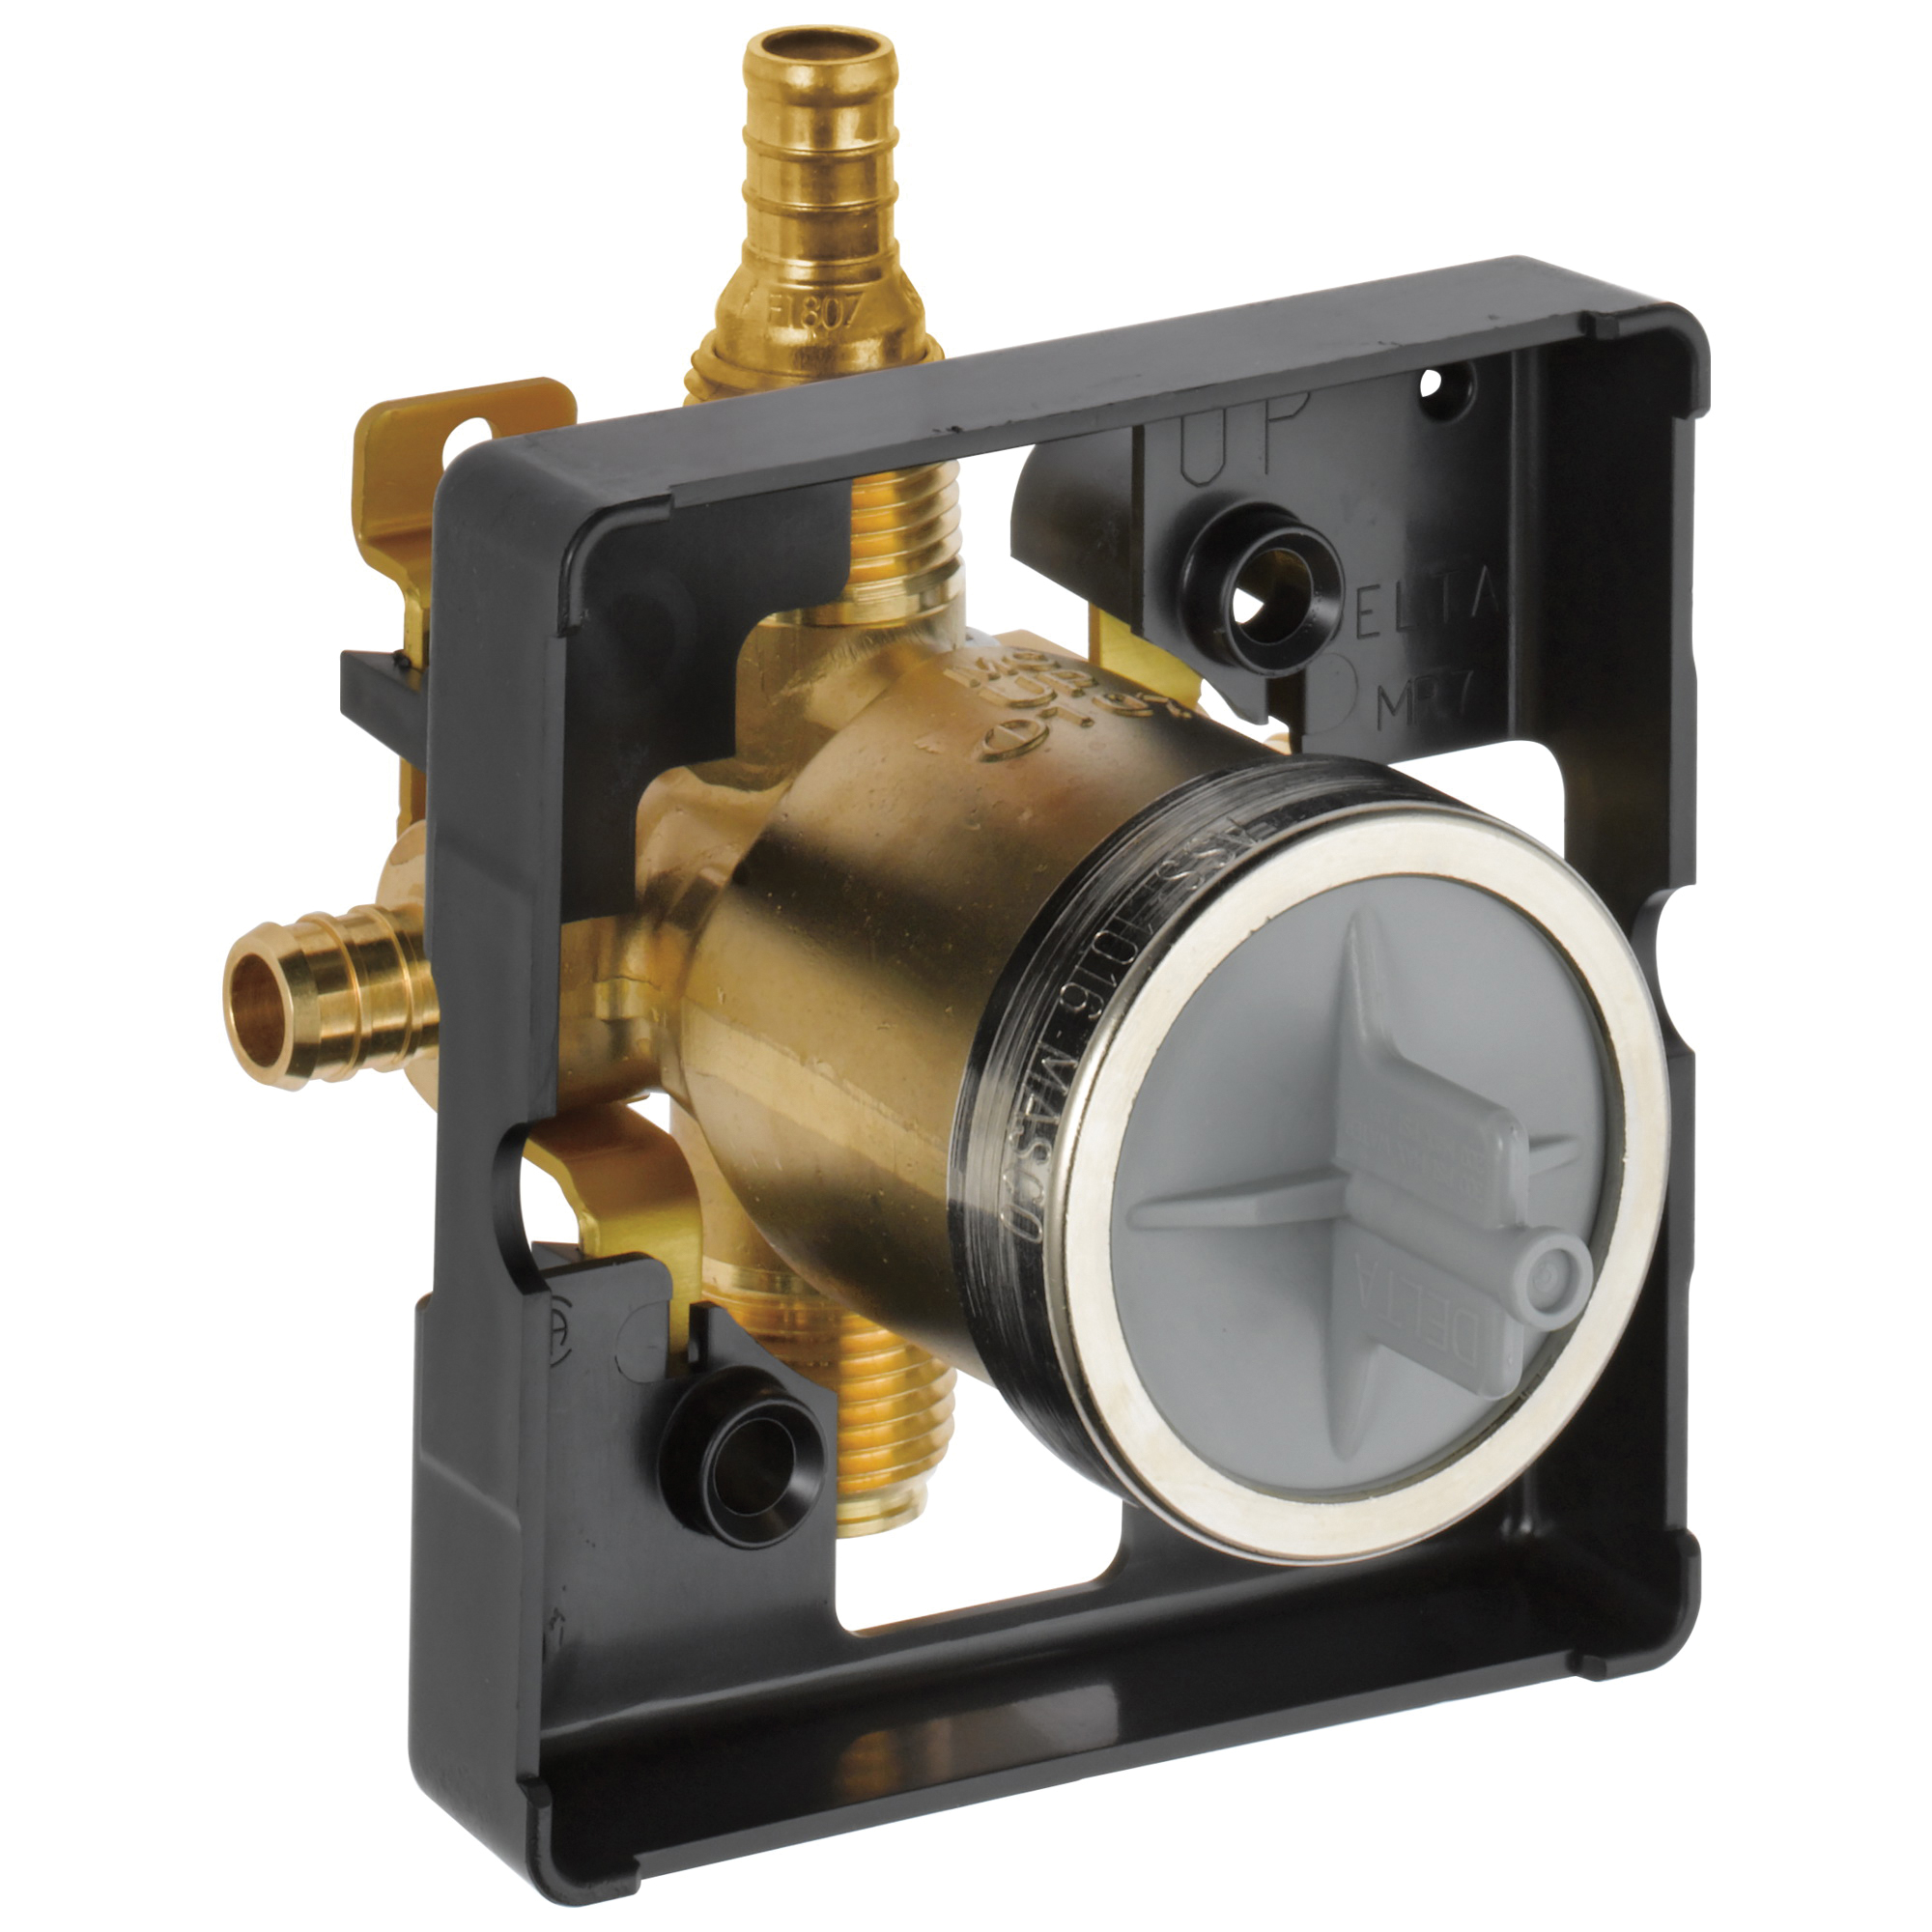 DELTA® R10000-PFS-PX MultiChoice® Universal Prefab Shower Rough-In Valve Body, 1/2 in PEX Crimp Inlet x 1/2 in PEX Crimp Outlet, Forged Brass Body, Domestic